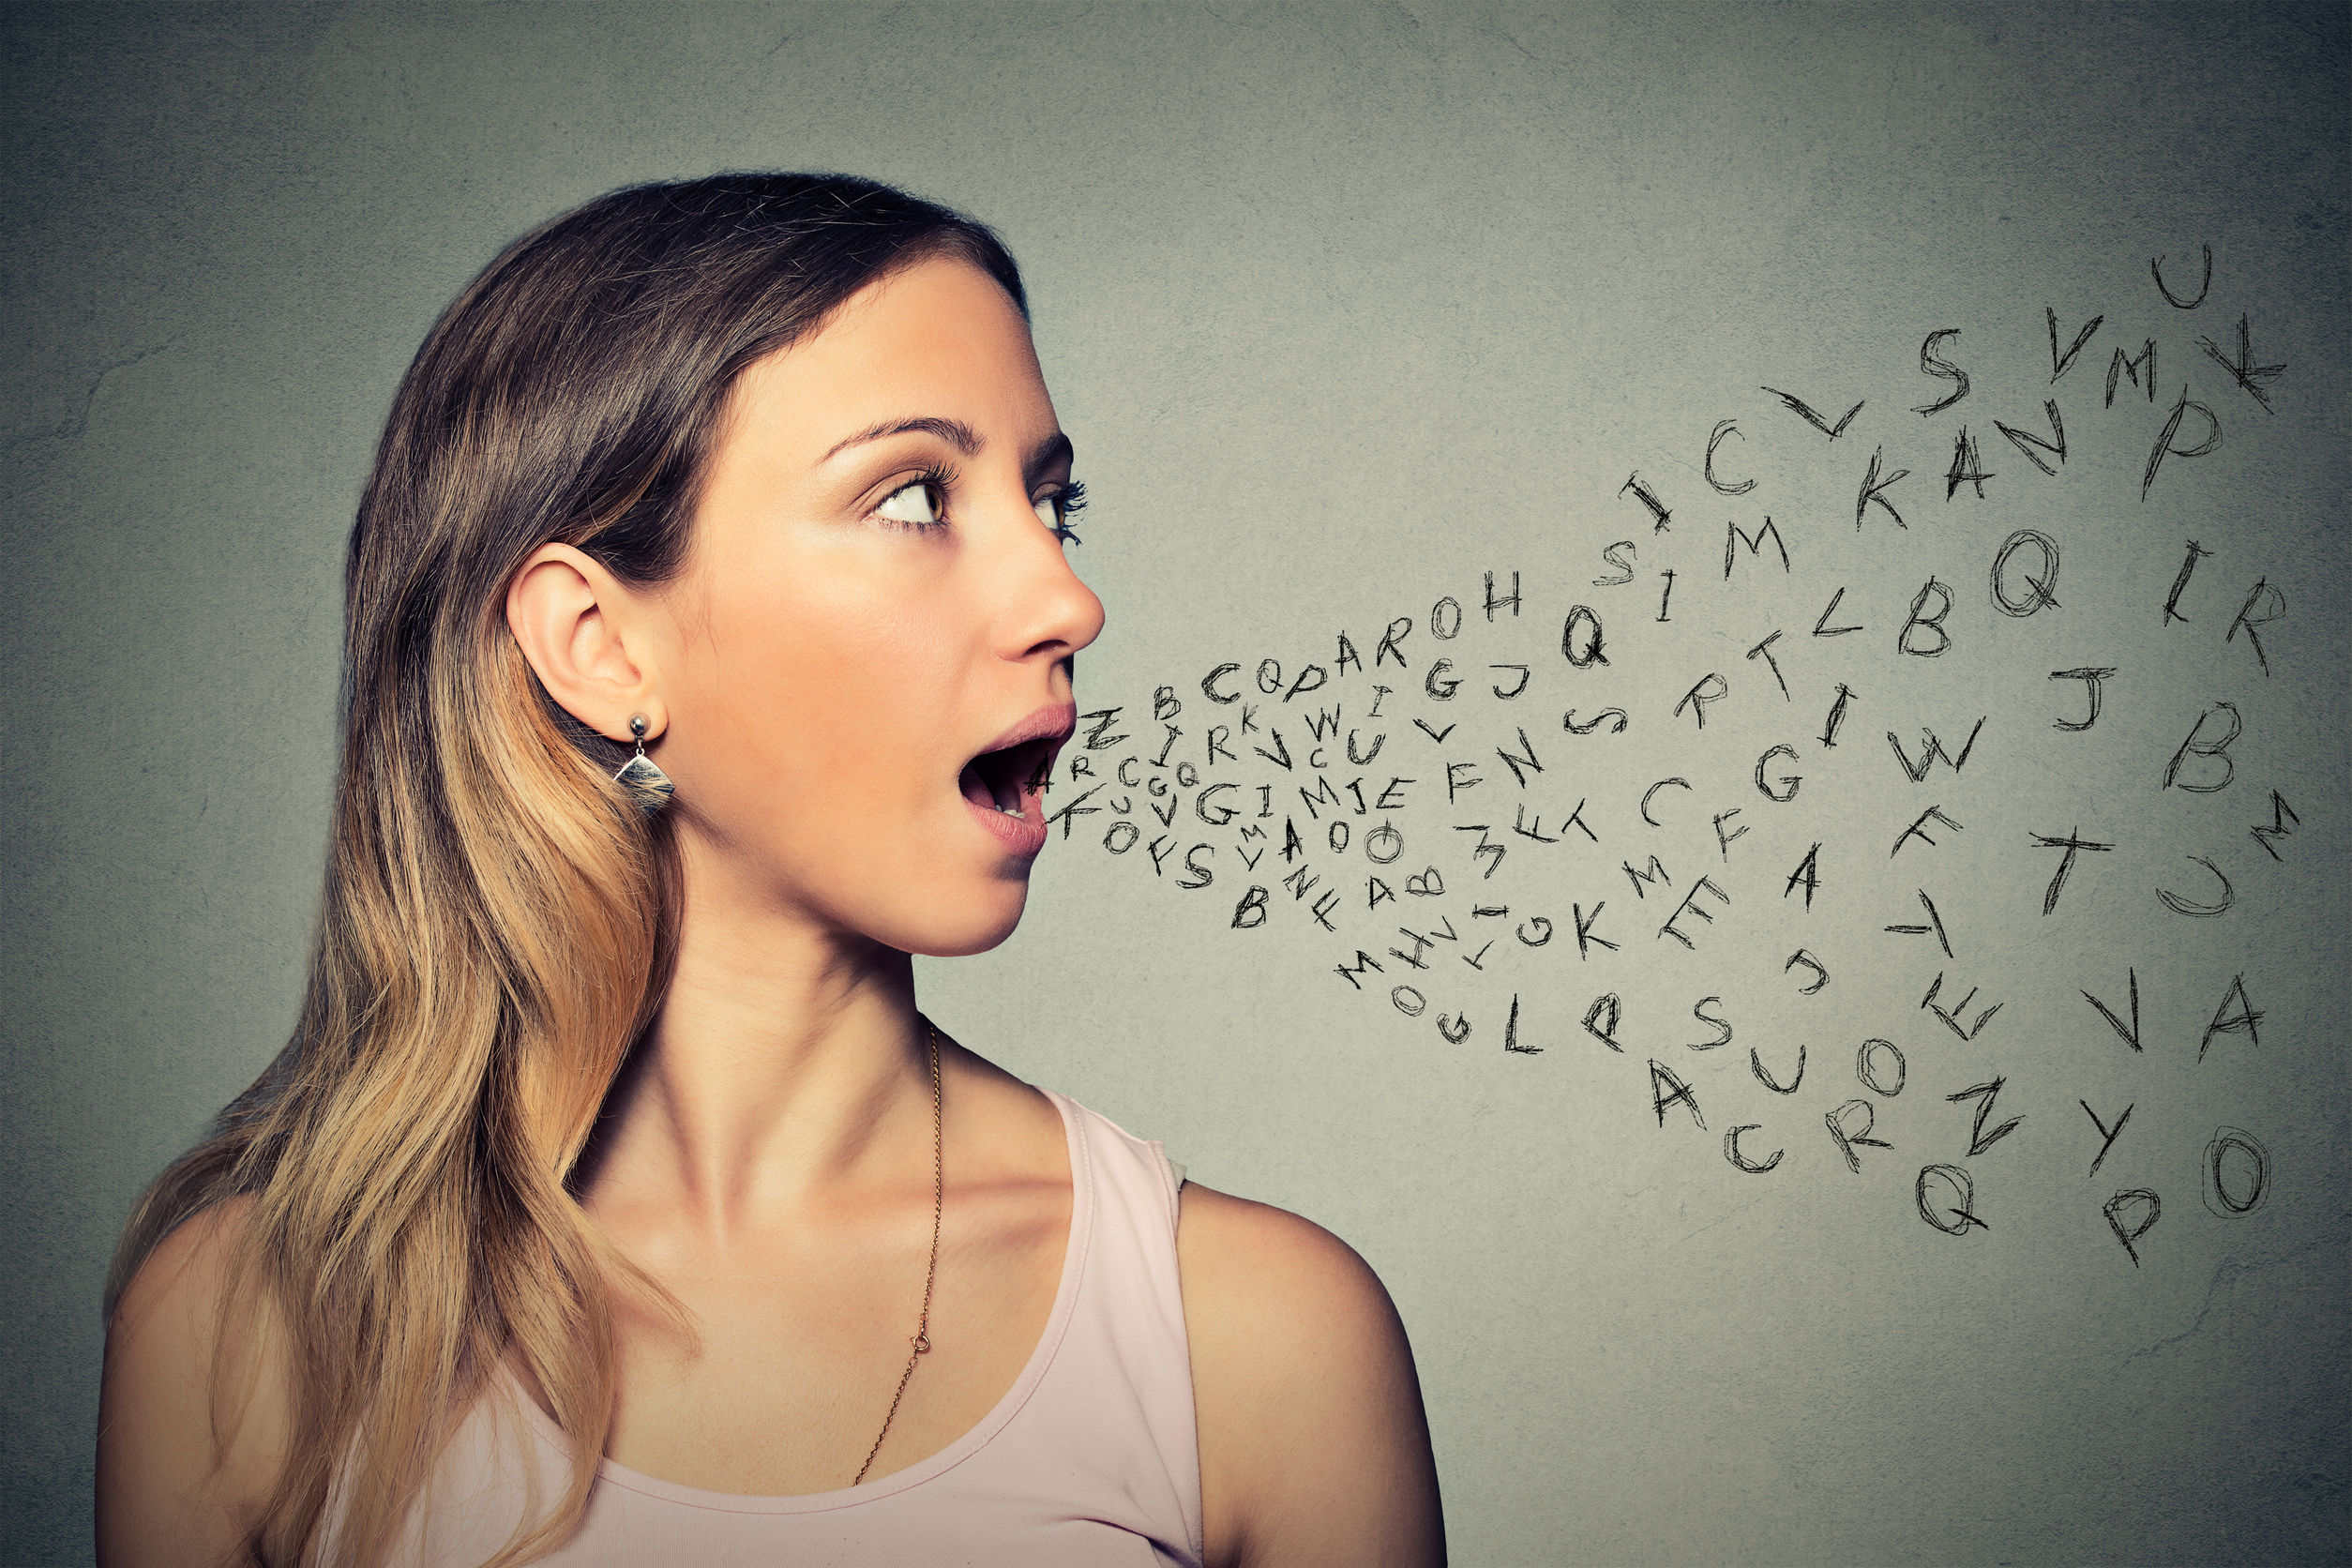 42813617 - woman talking with alphabet letters coming out of her mouth.